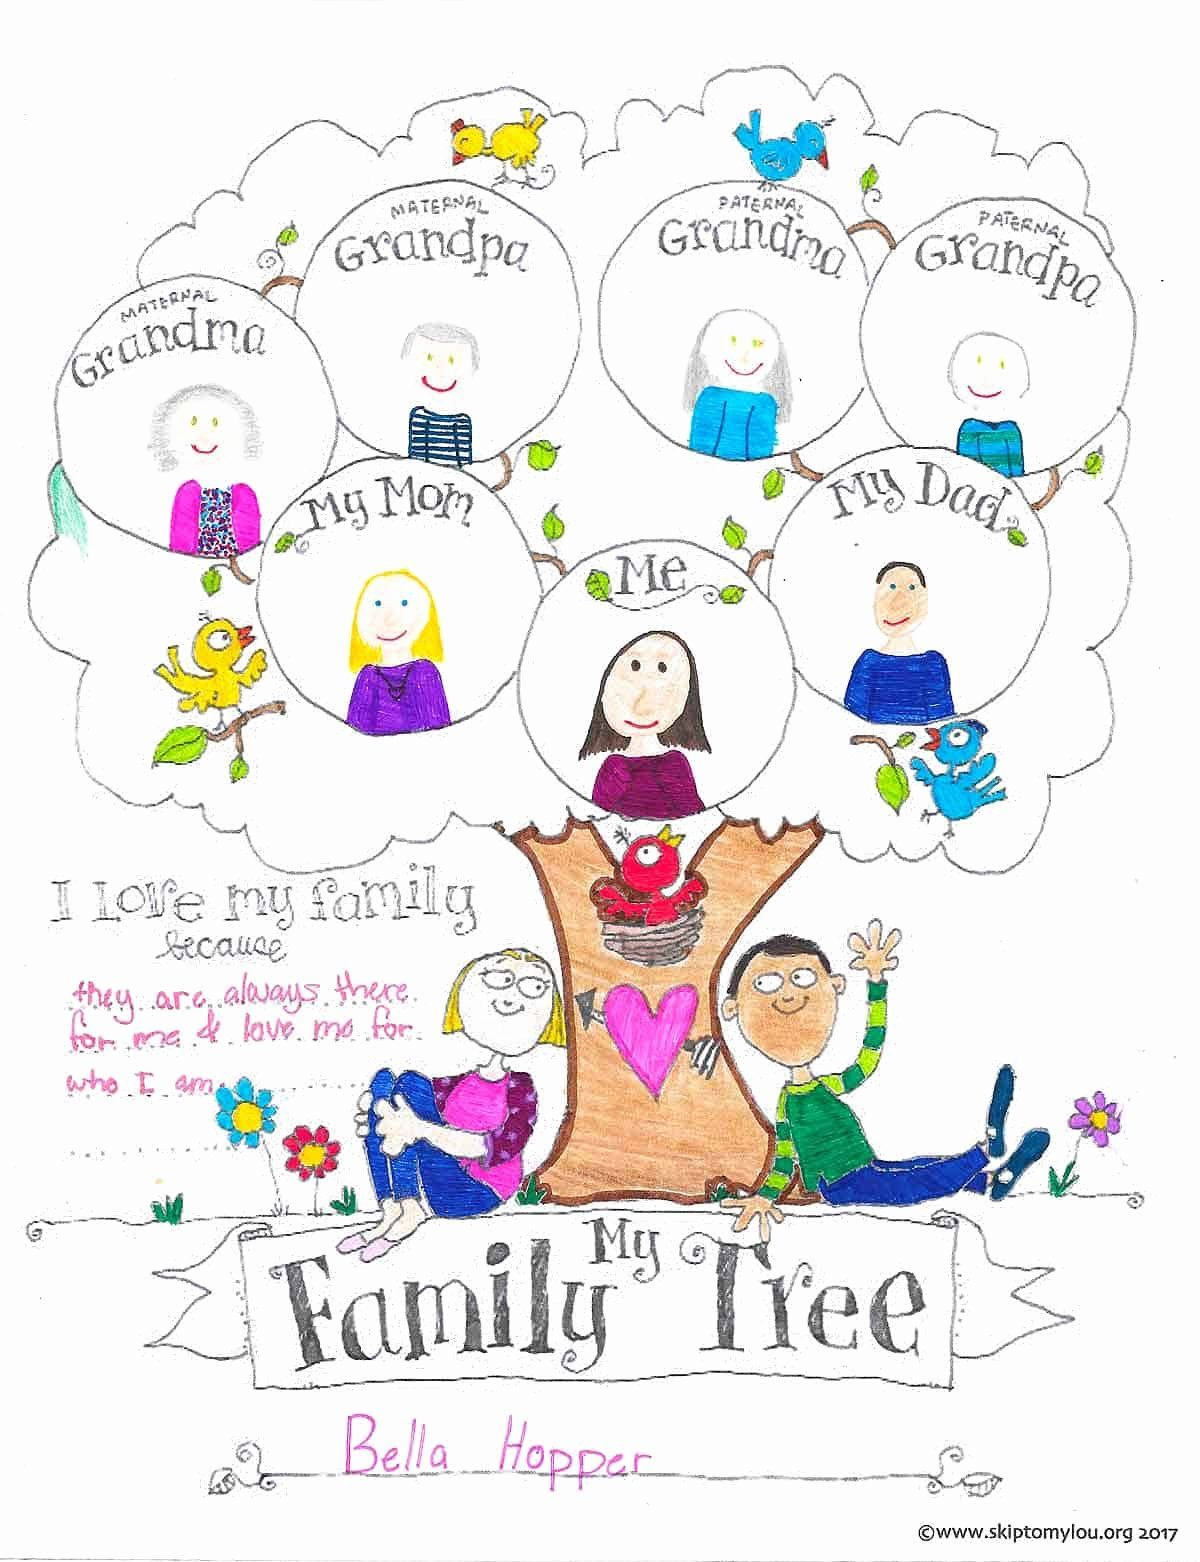 Free Printable Family Tree Elegant Free Printable Family Tree Coloring Page Family Tree Project Family Tree Craft Family Tree Activity